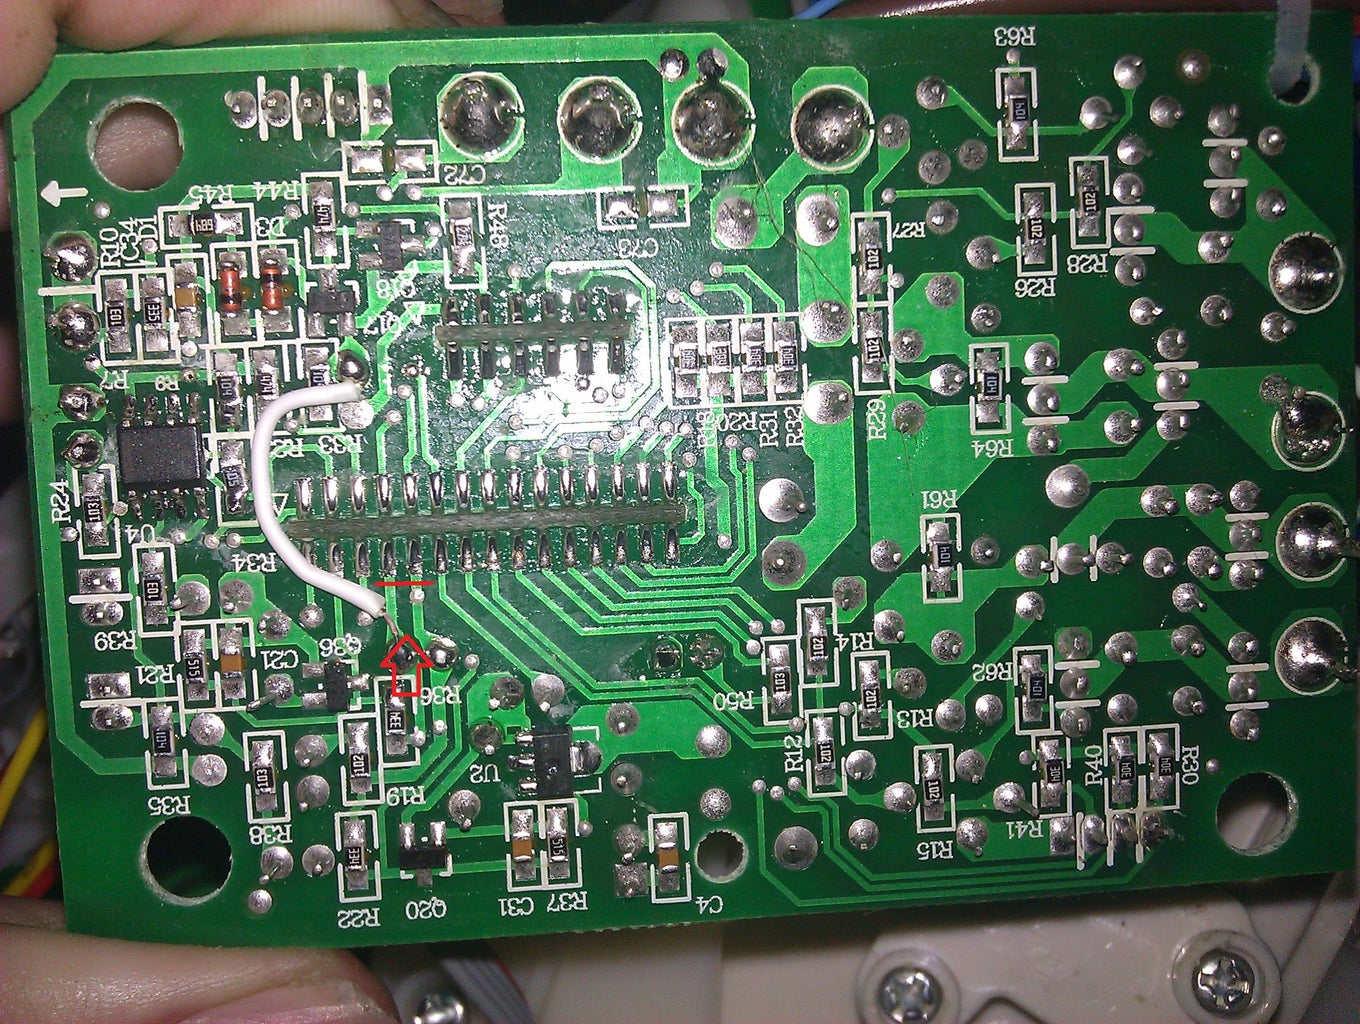 Cutting the Power to the Microcontroler